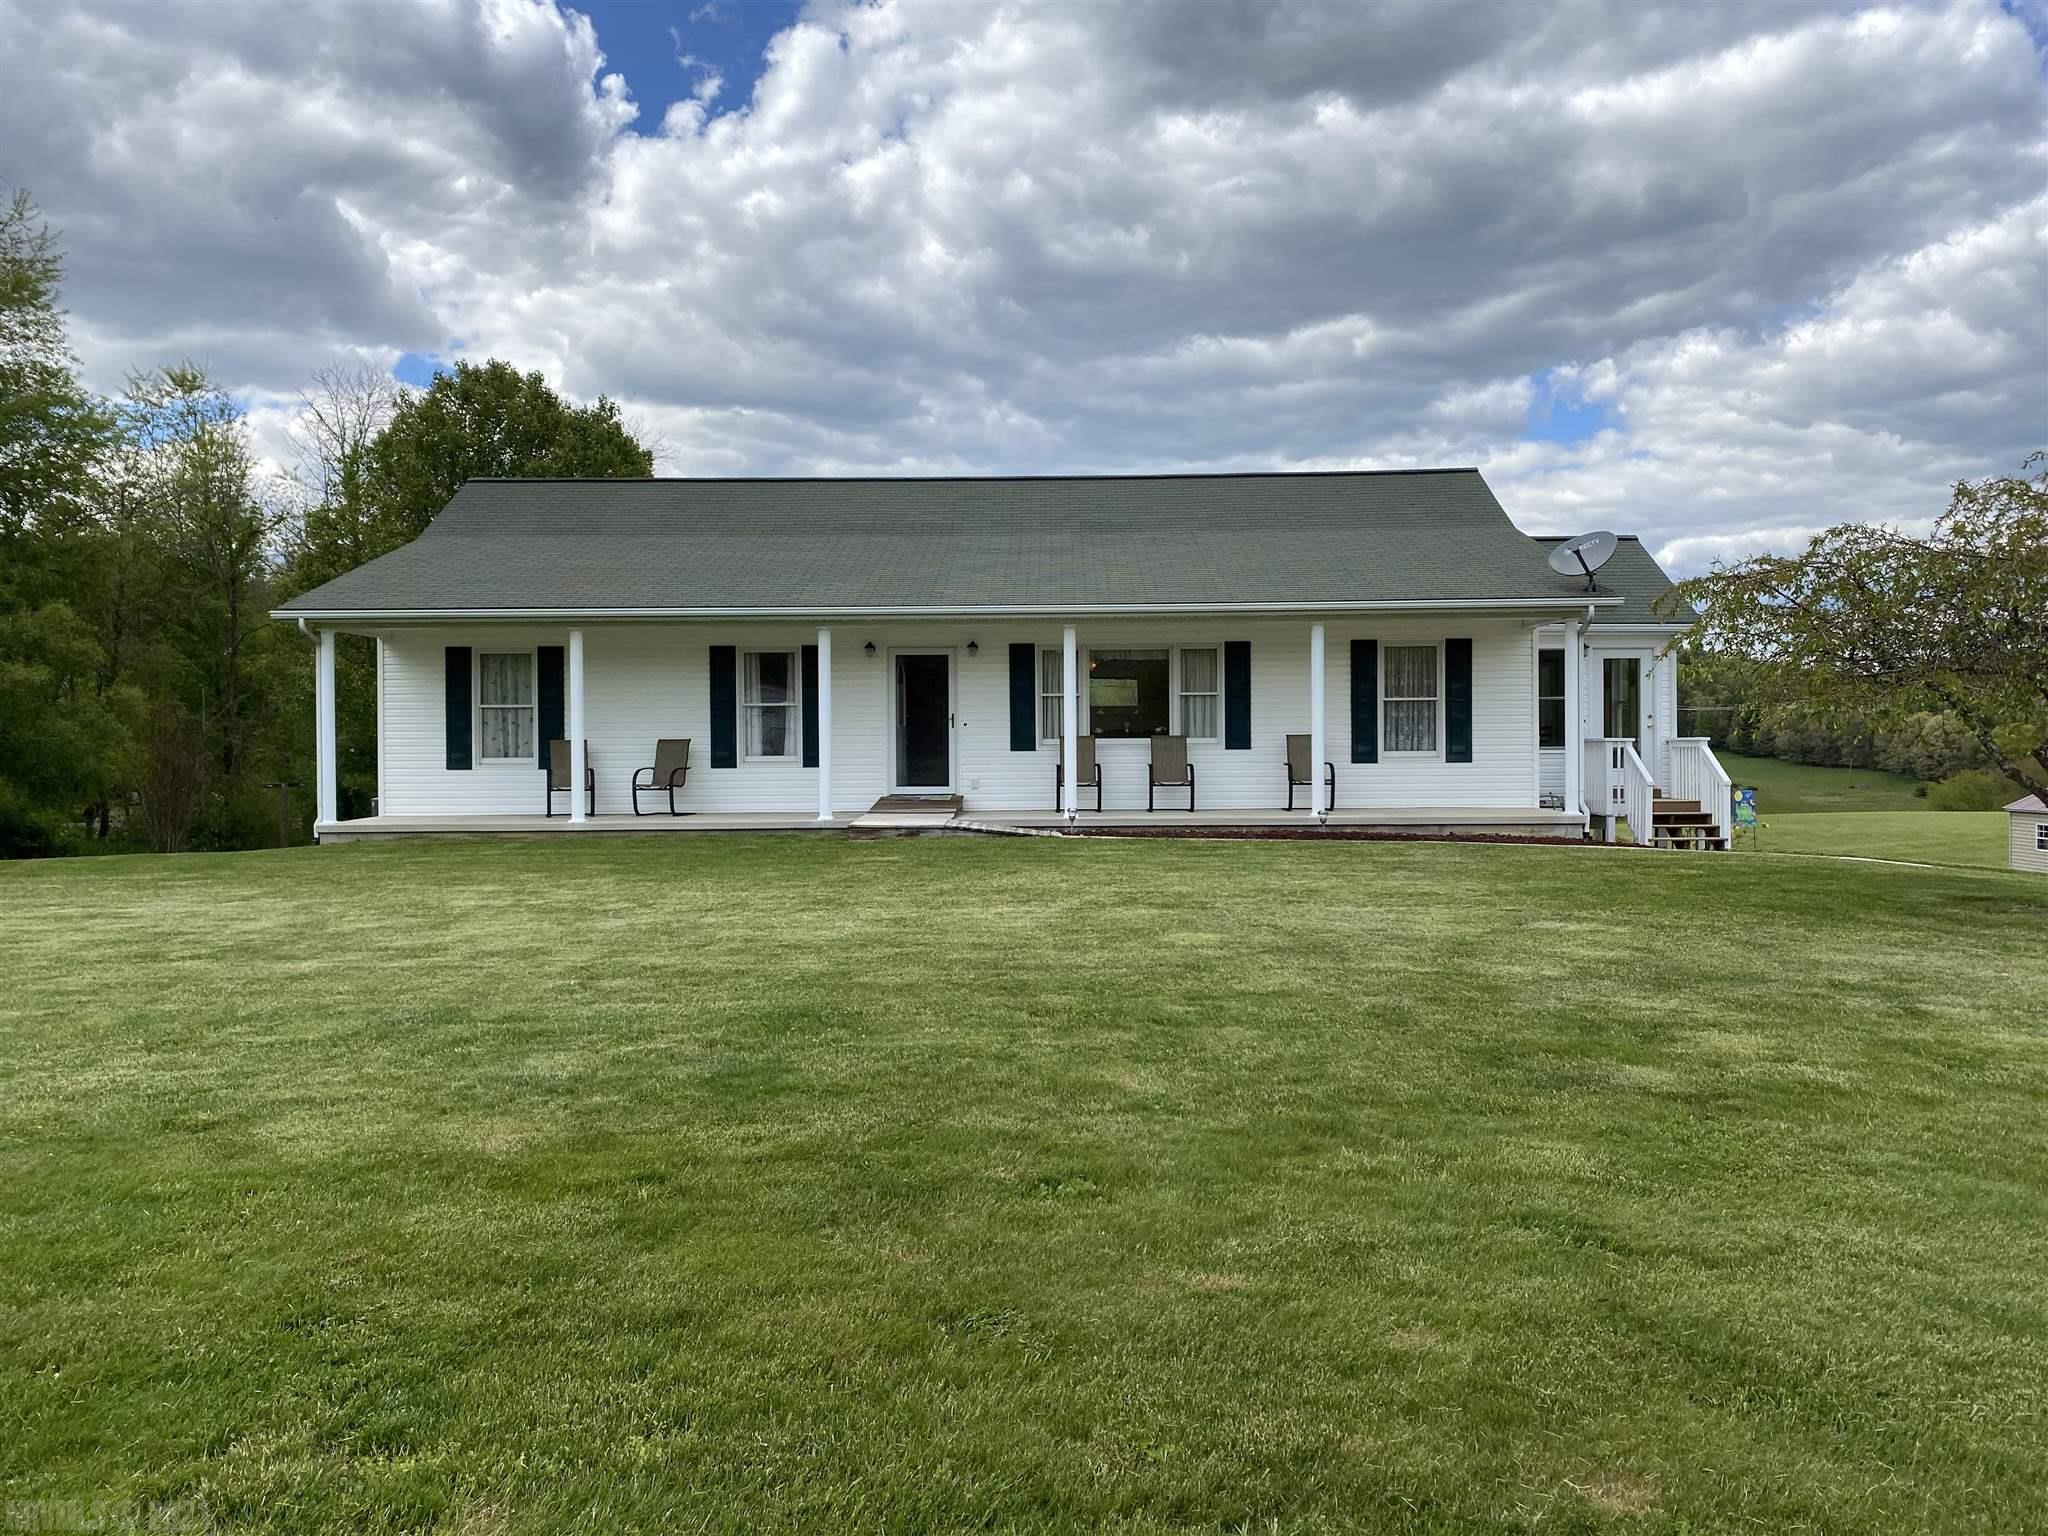 Move-in Ready home with beautiful mountain views. Well cared for and clean as a whistle. 2 BR, 2 full bath on 1.63 acres. Two-car garage. Only minutes from I-77.  Quiet country living at its finest.  This one won't be available long.